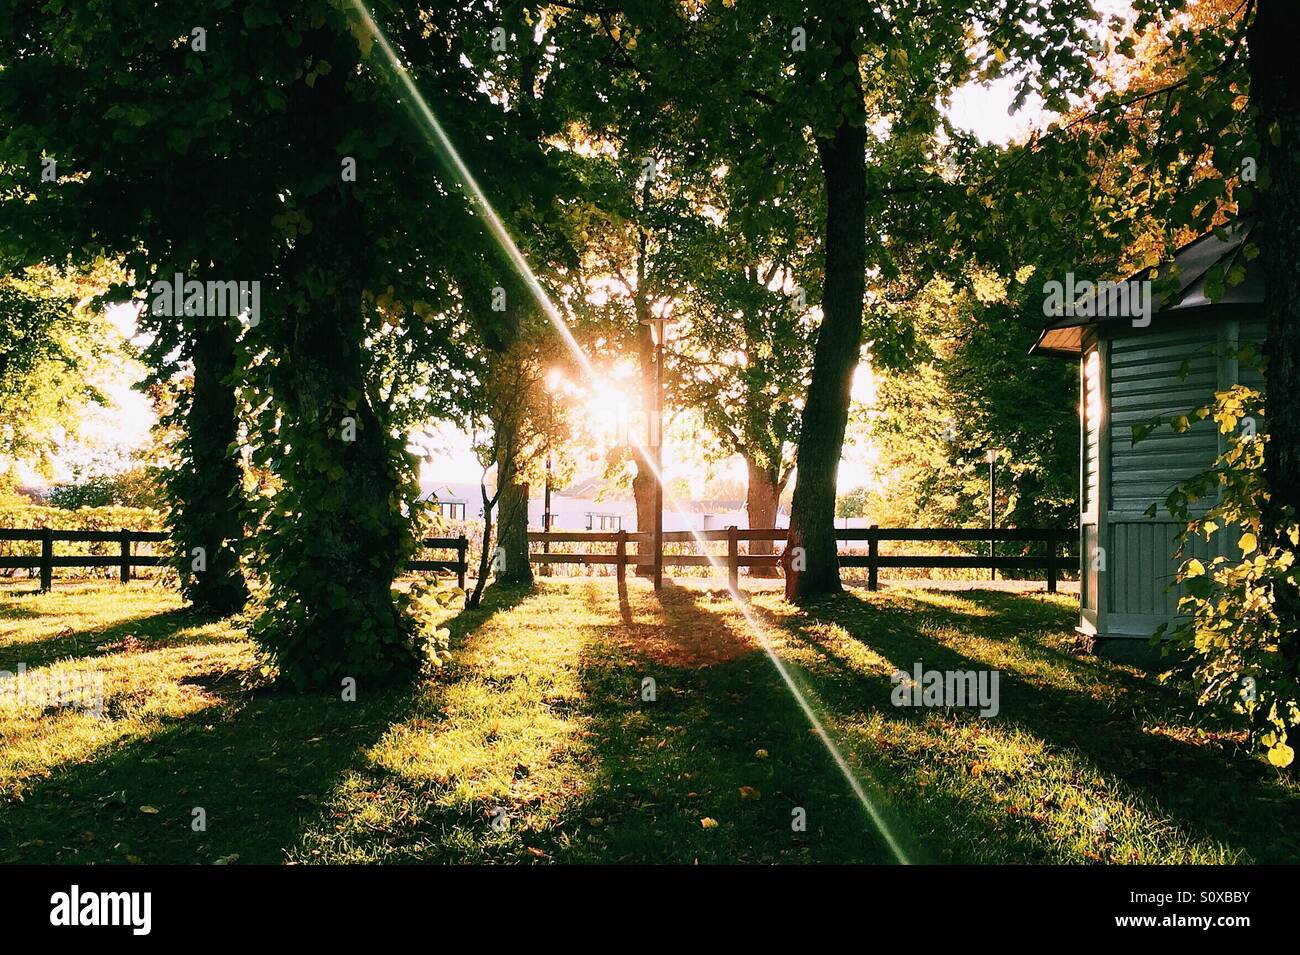 Sunset in south of Sweden - Stock Image